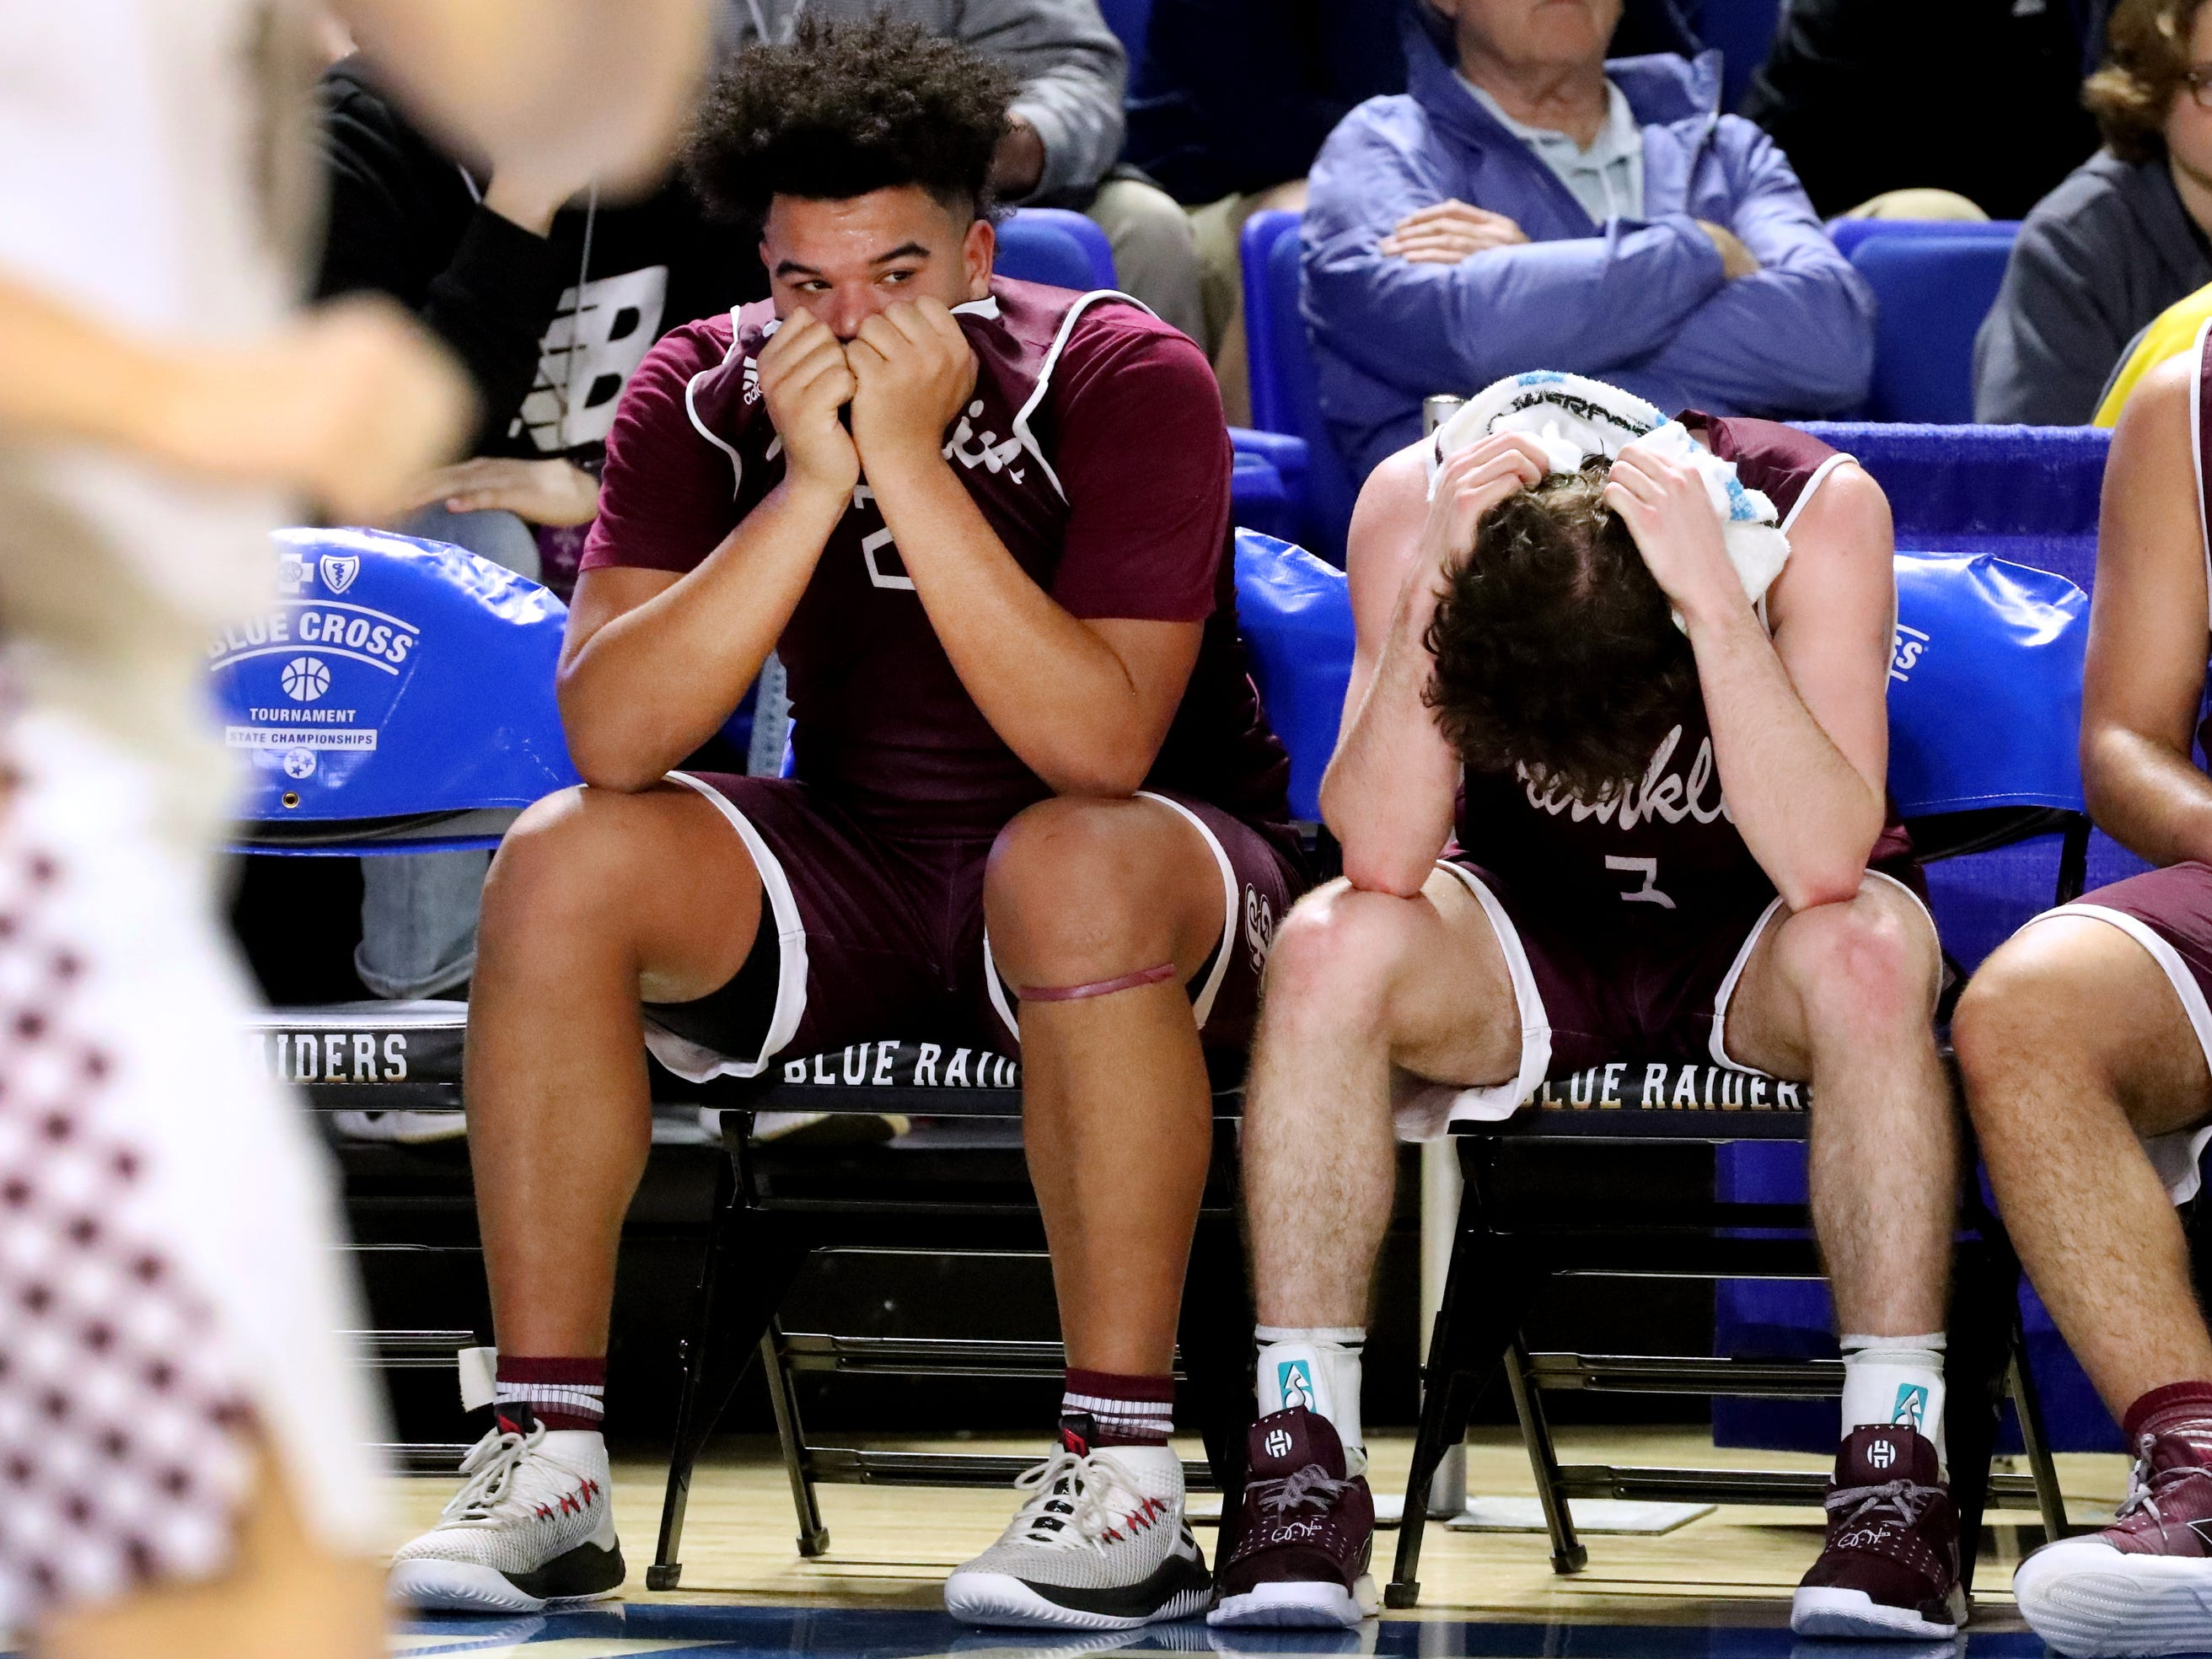 Franklin High School seniors Ahsharri Haynesworth (2), left and Reese Glover (3),right react to losing during the final moments in the quarterfinal round of the TSSAA Class AAA Boys State Tournament against Bearden, on Wednesday, March 13, 2019, at Murphy Center in Murfreesboro, Tenn.